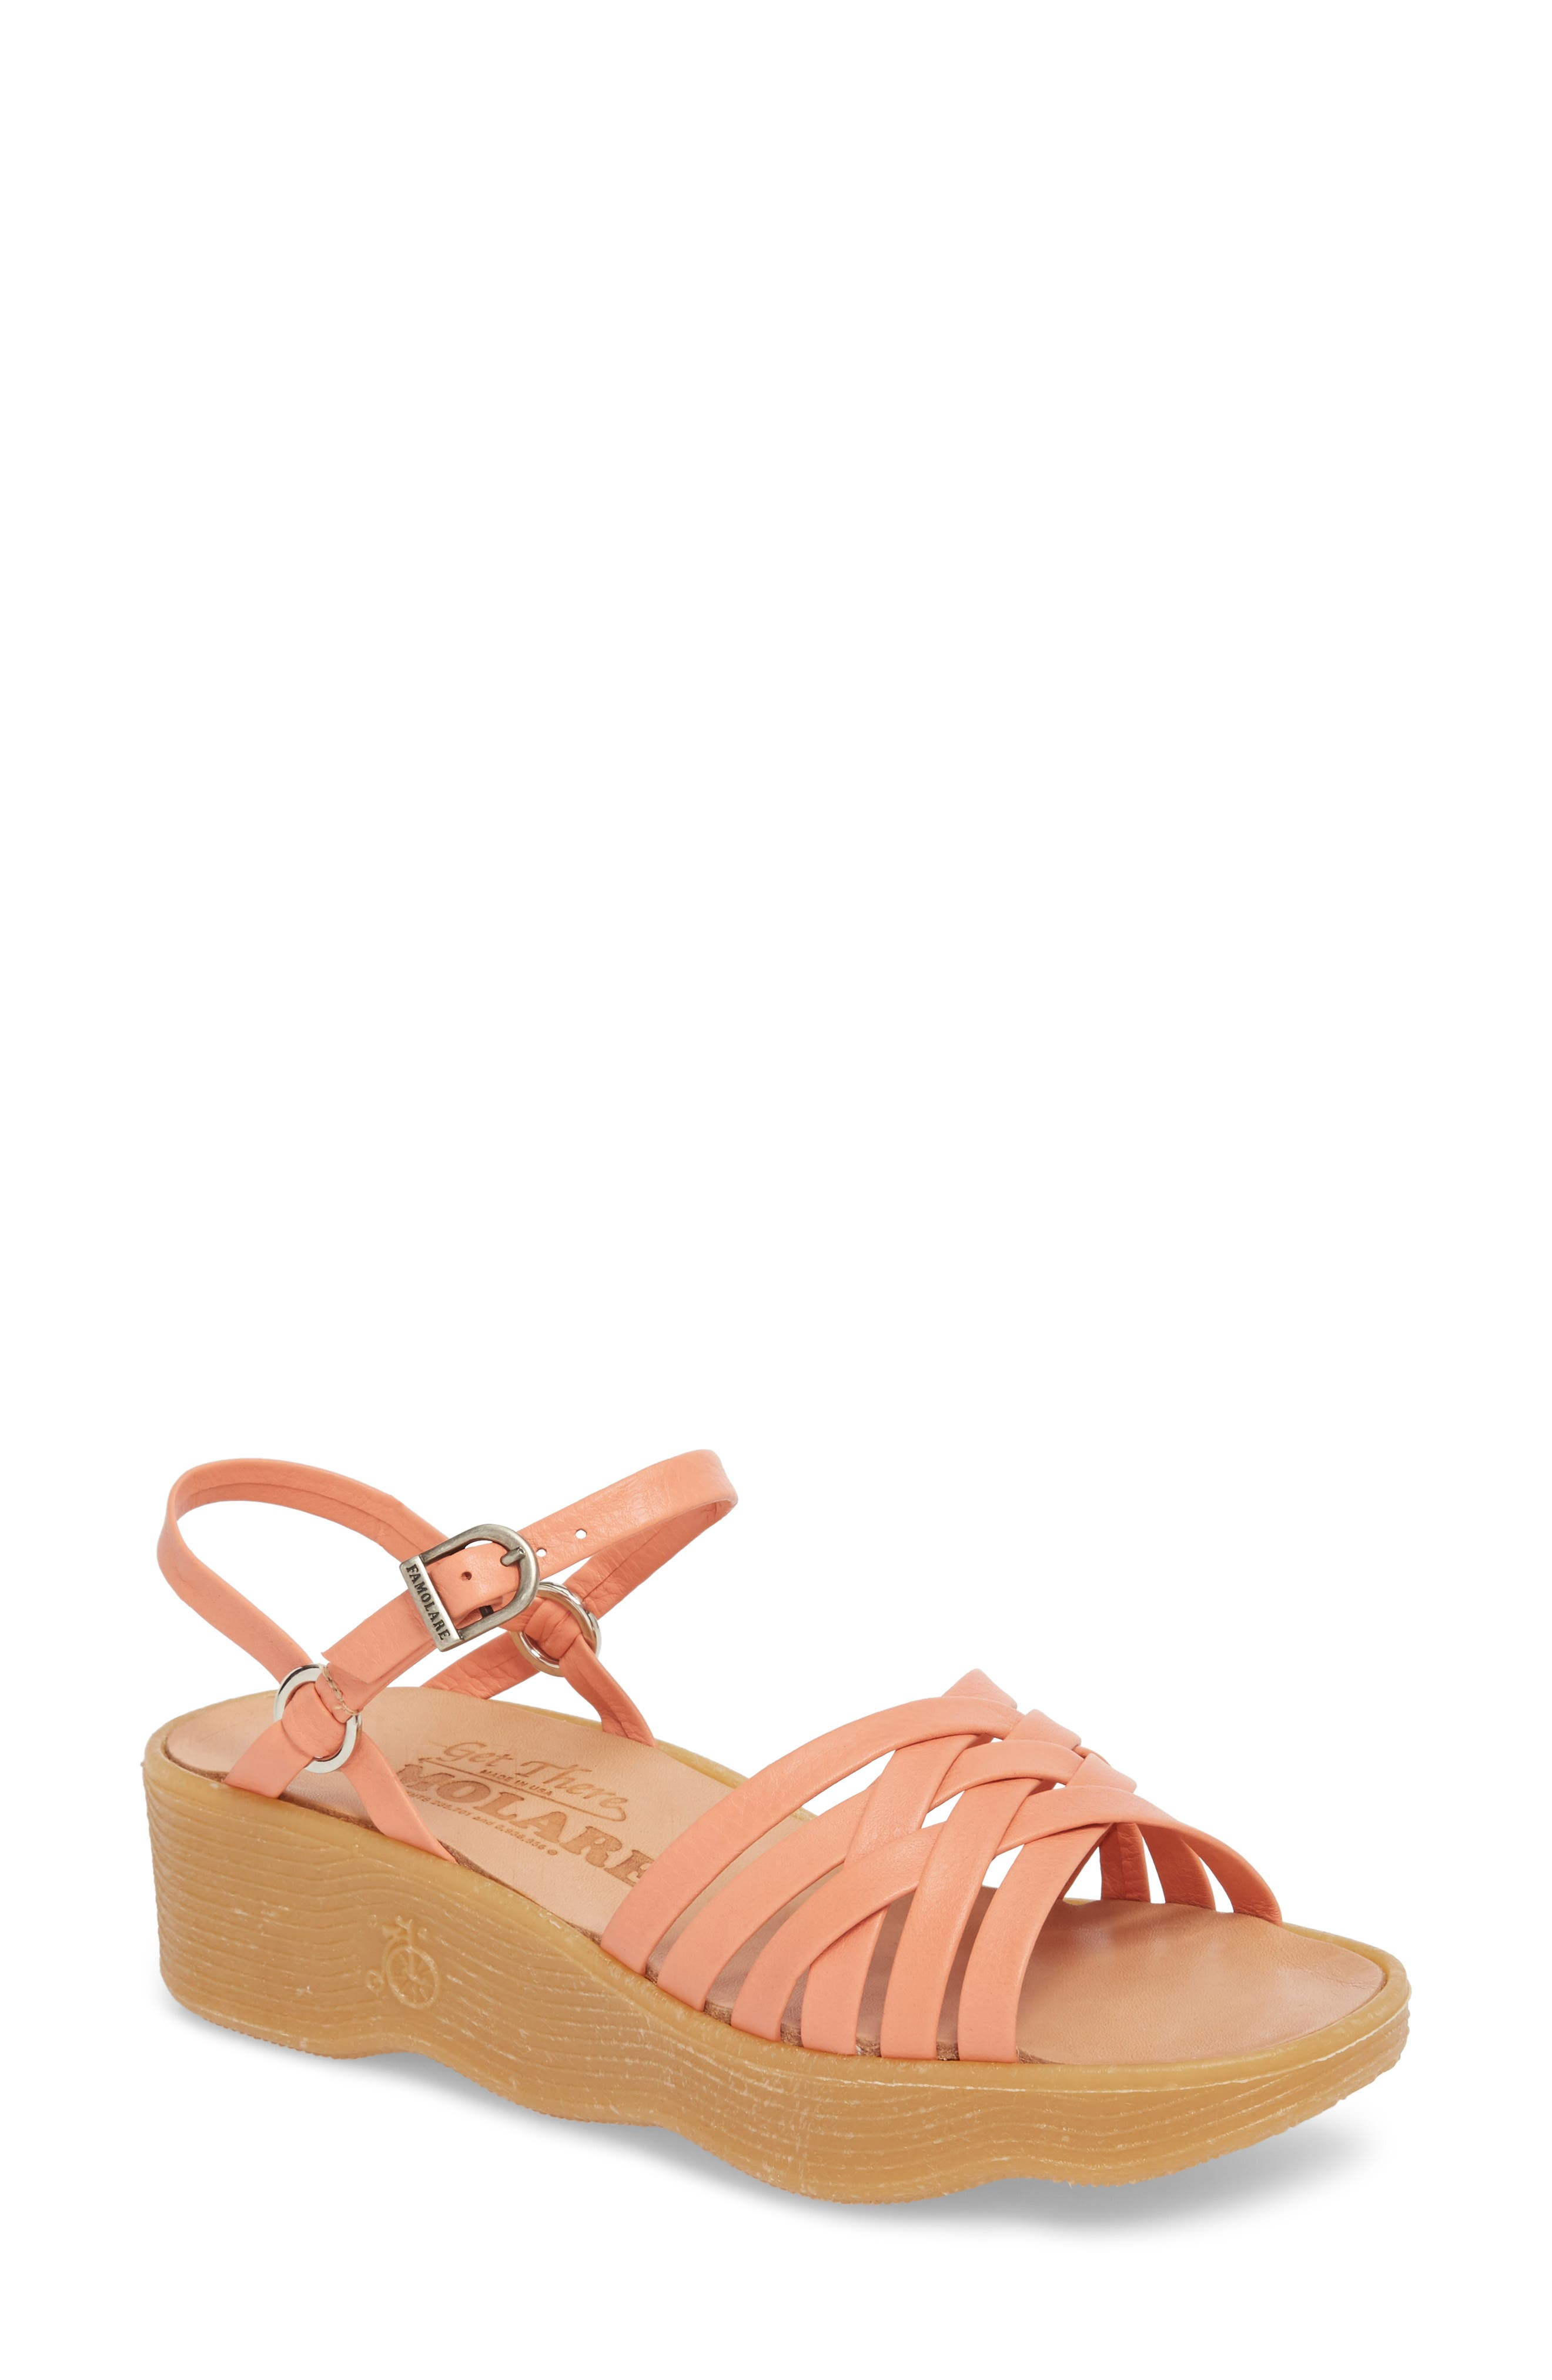 Strappy Camper Sandal,                         Main,                         color, Salmon Leather